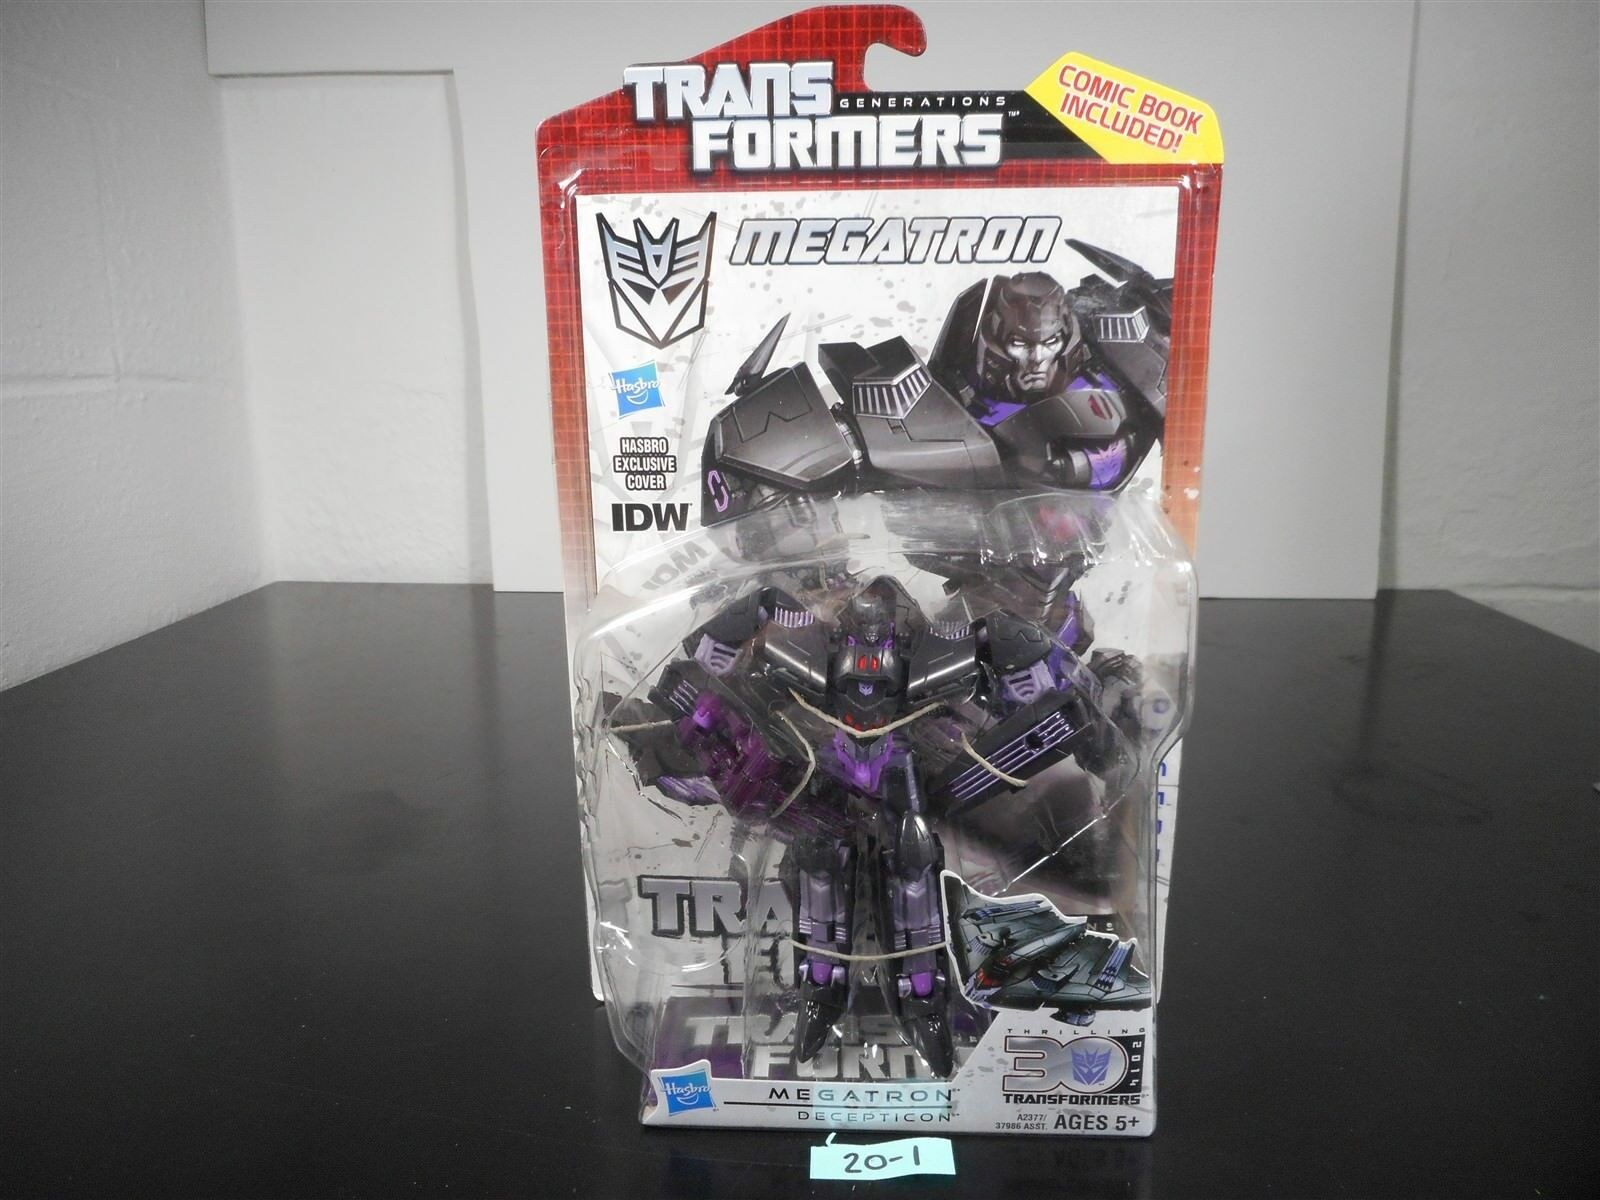 NEW & SEALED TRANSFORMERS GENERATIONS IDW MEGATRON DELUXE FIGURE 30TH ANN 20-1